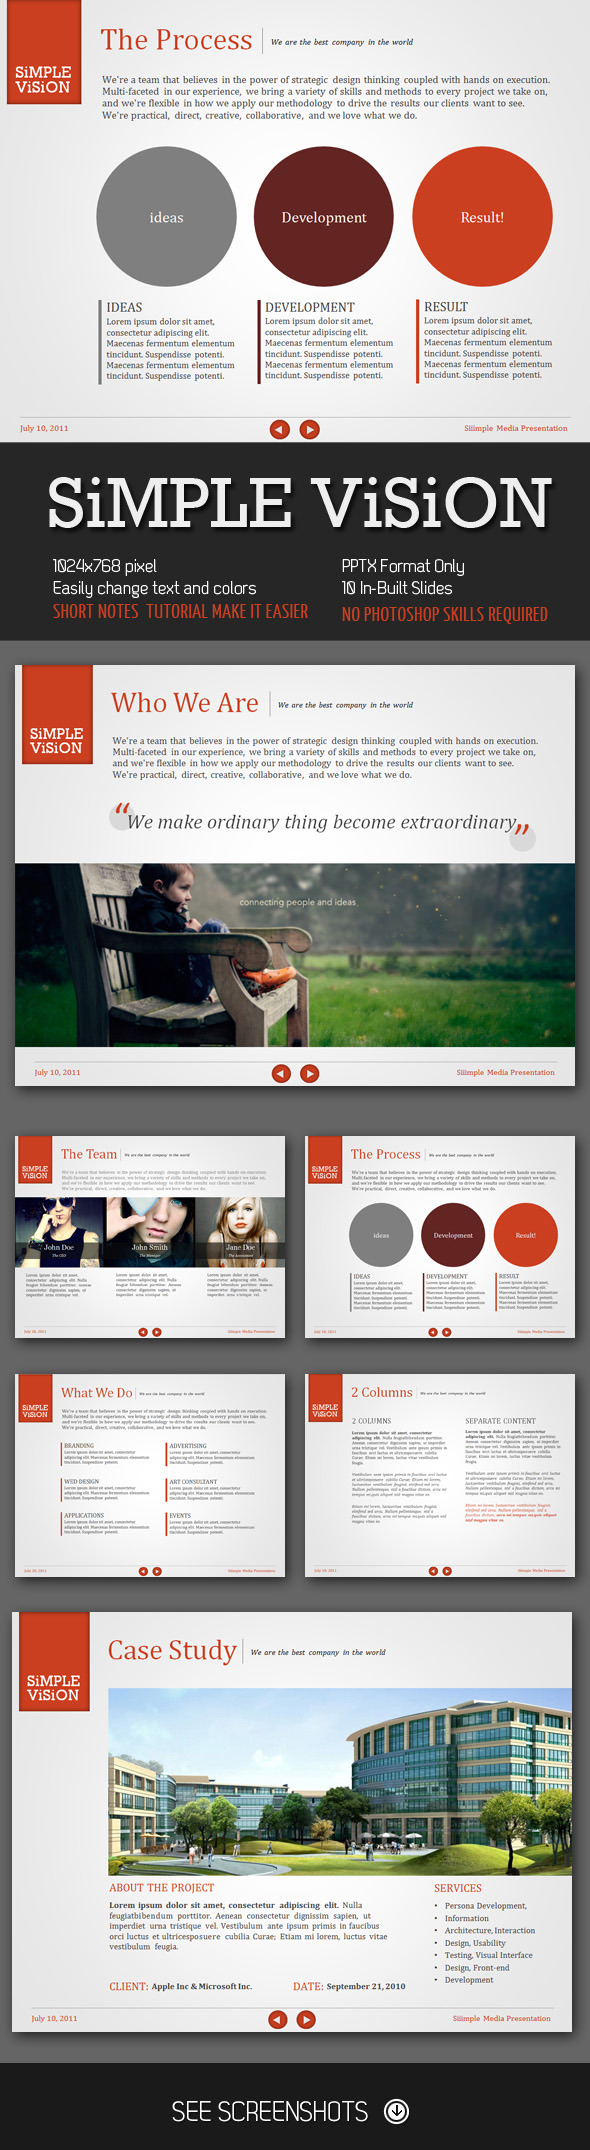 Simple Vision PowerPoint Presentation - Creative Powerpoint Templates